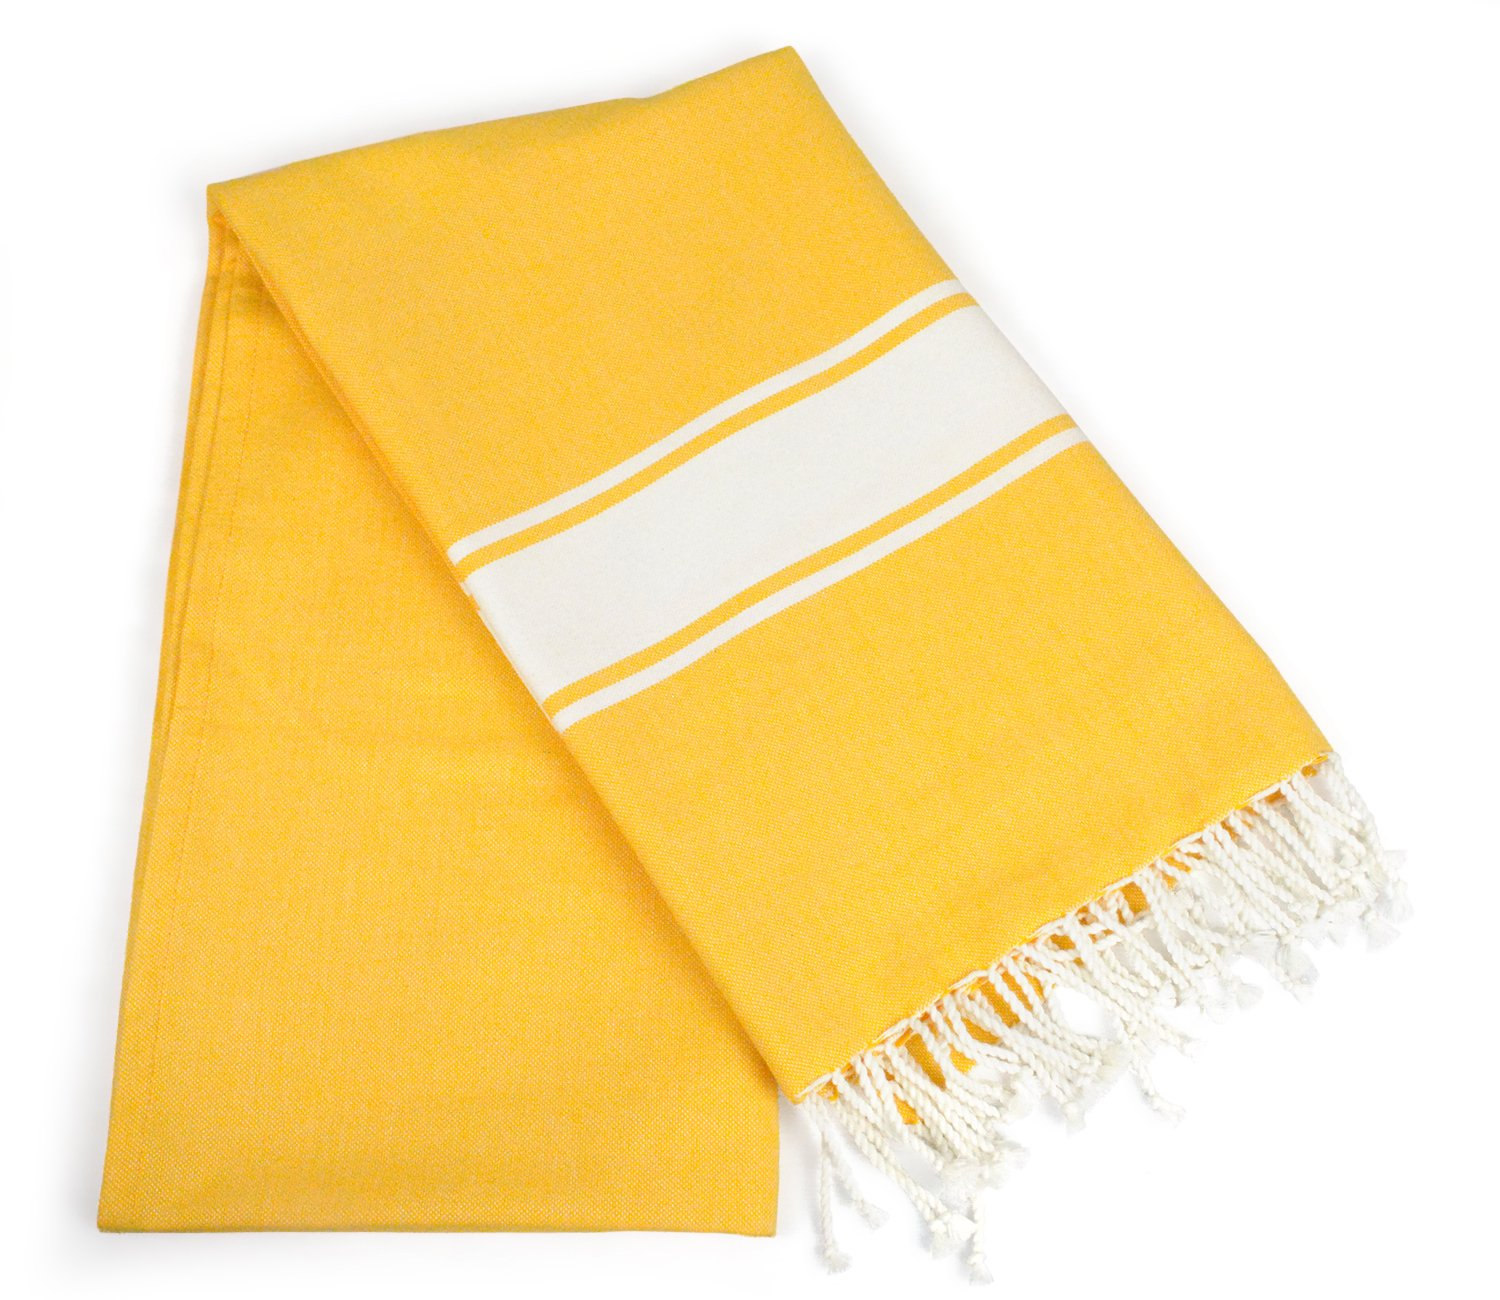 DII Peshtemal Turkish Super Soft, Absorbent, Oversized Bath Towel, Throw, & Blanket Fringe For Chair, Couch, Picnic, Camping, Beach, Yoga, Pilates, & Everyday Use , 39 x 71'' - Yellow Tri Stripe